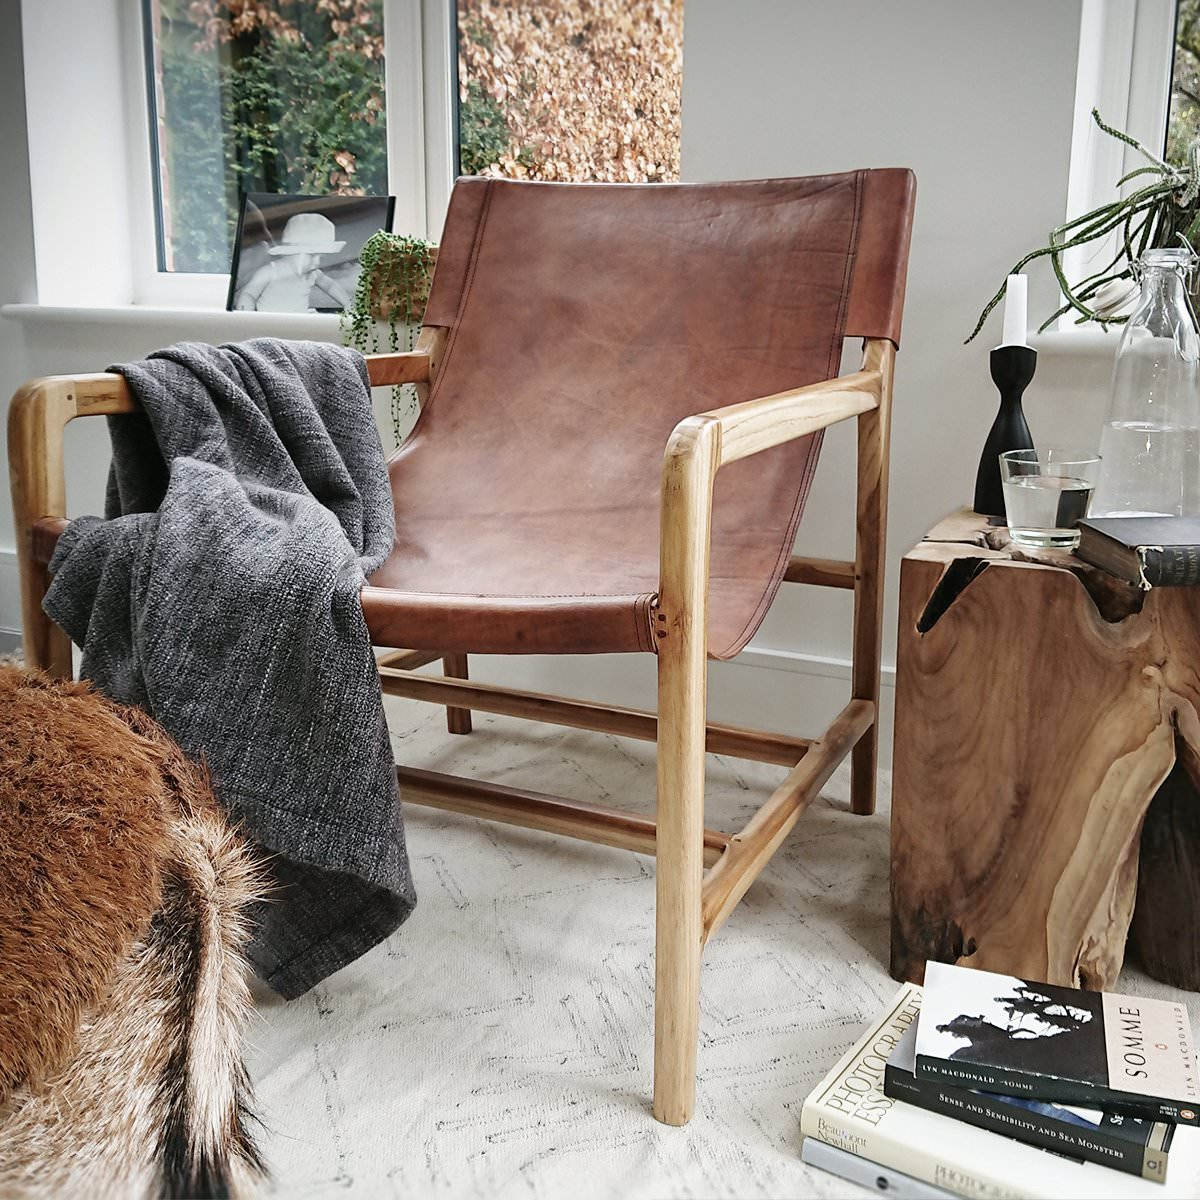 Souk Collective may have only launched in the UK in February this year yet they are rapidly building themselves a reputation as a go to store if you're looking to insert some cool boho vibes into your space